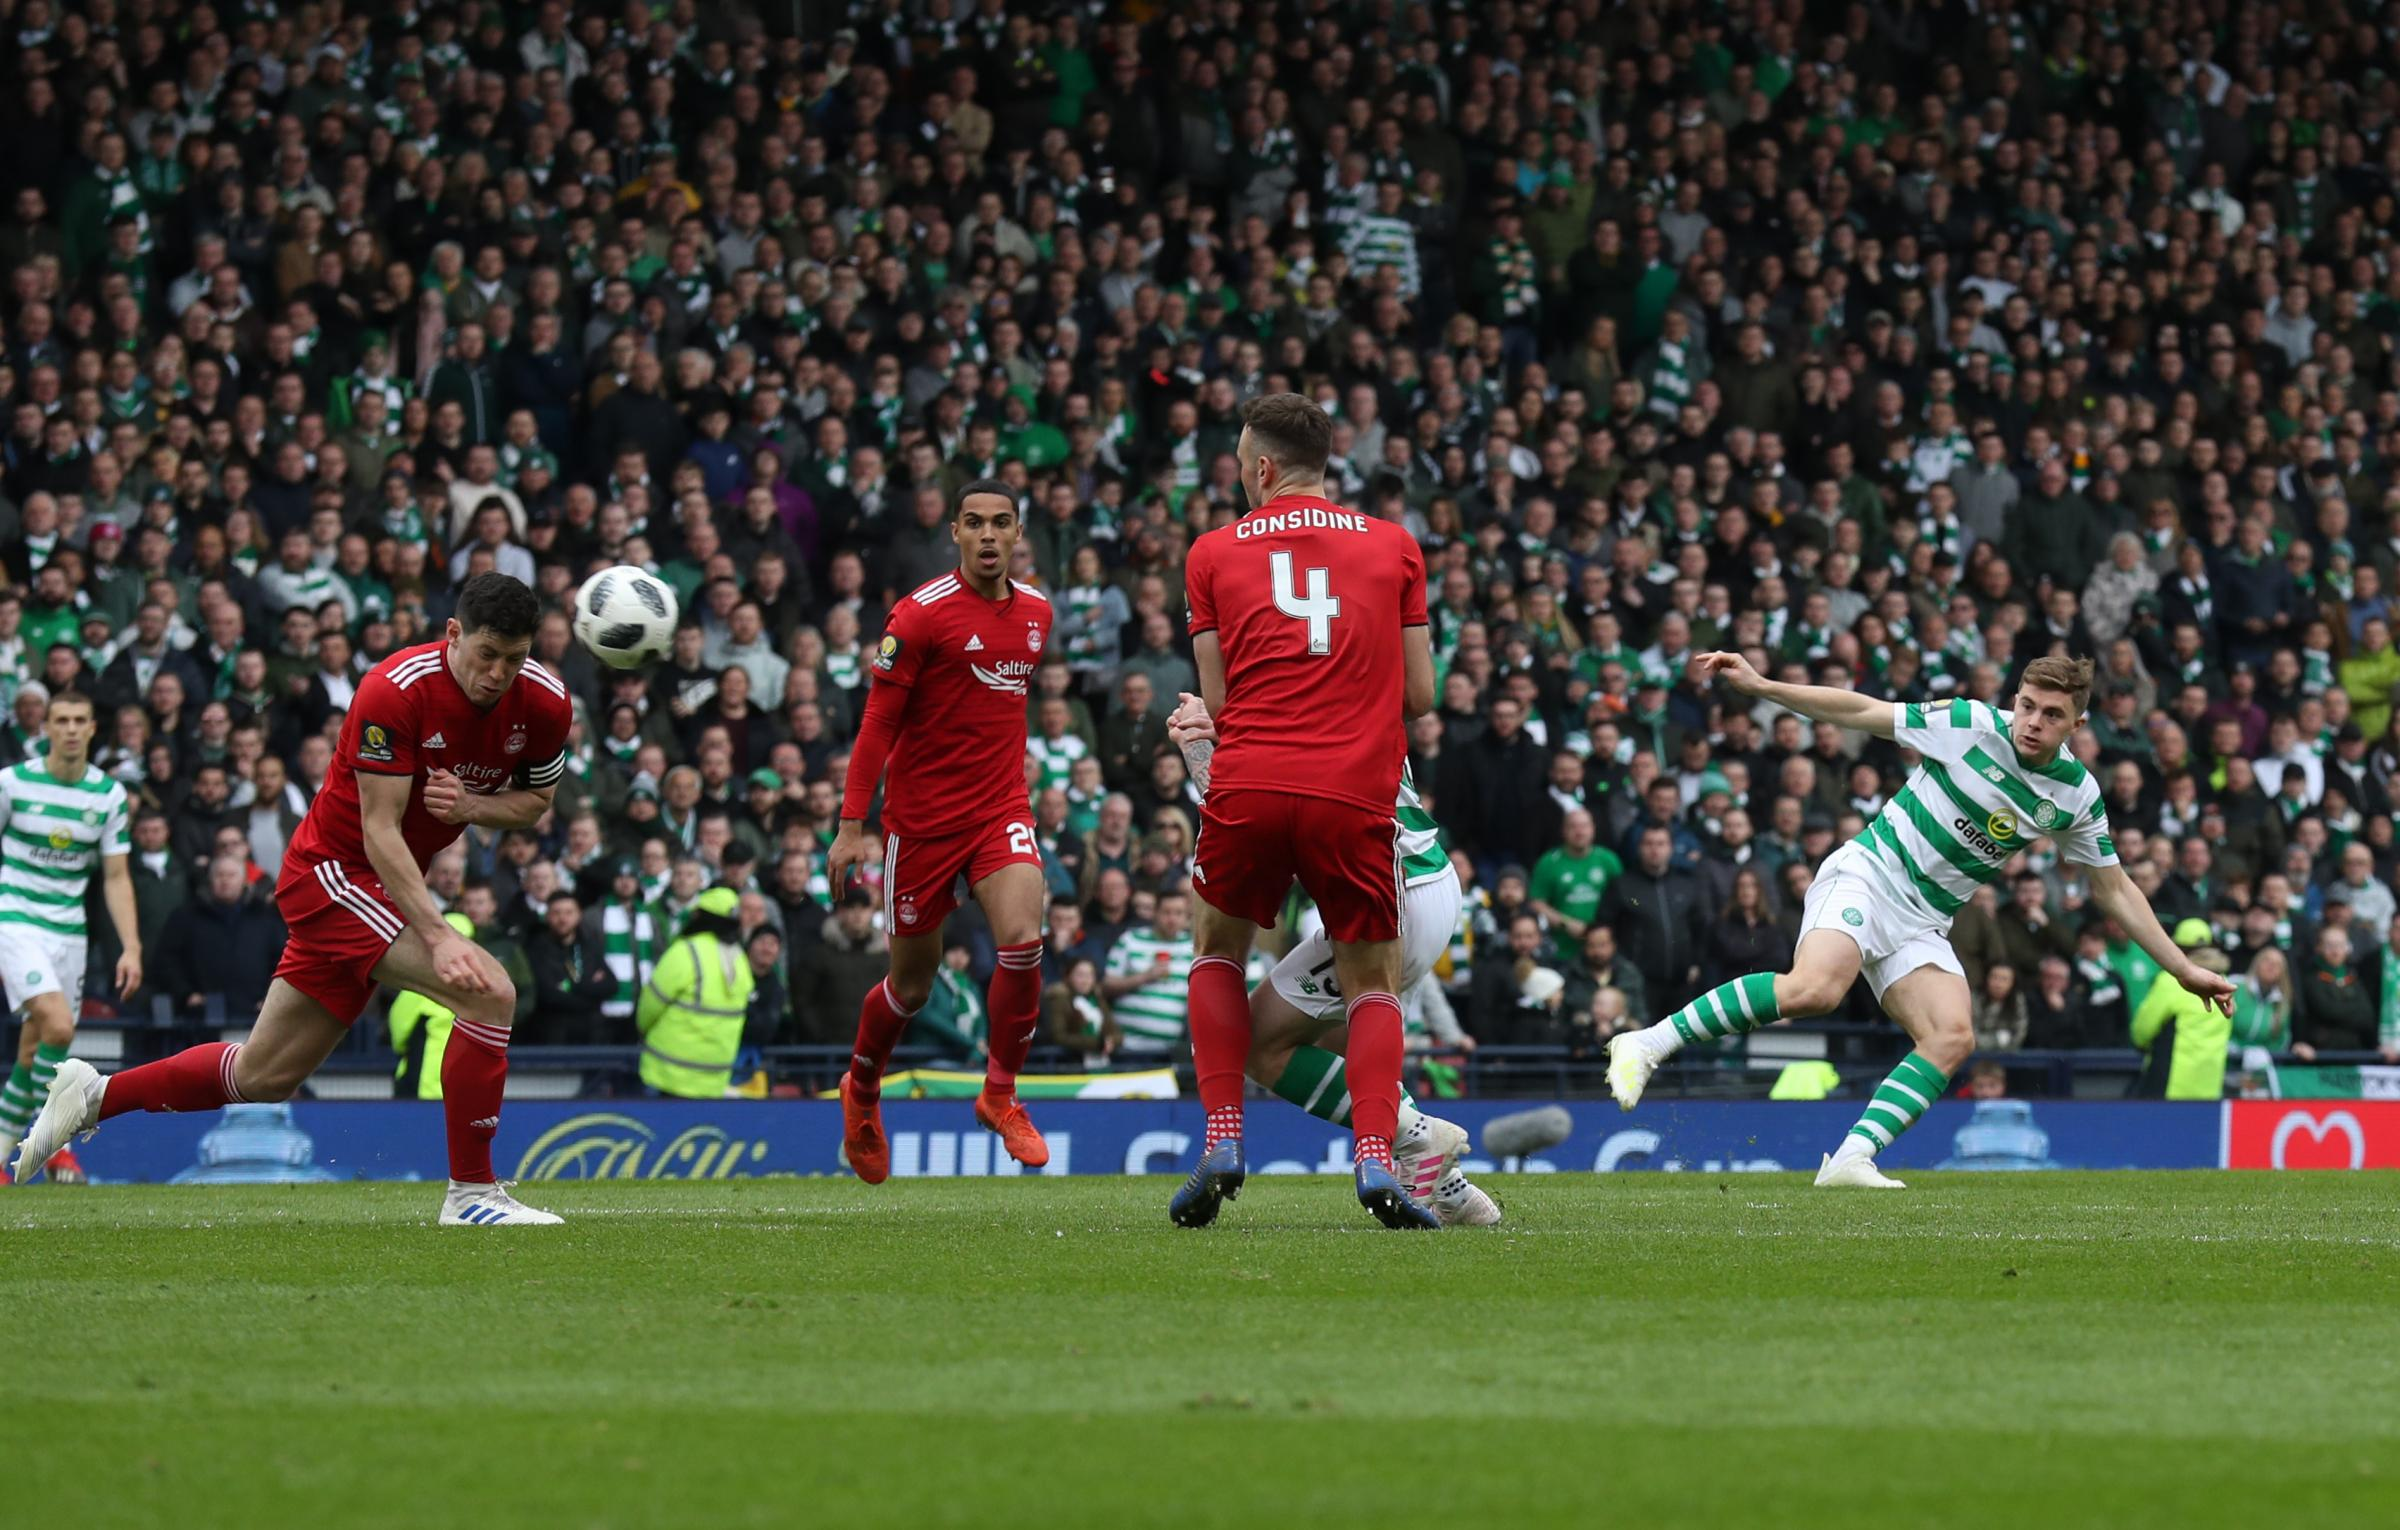 James Forrest scores a brilliant goal for Celtic at Hampden